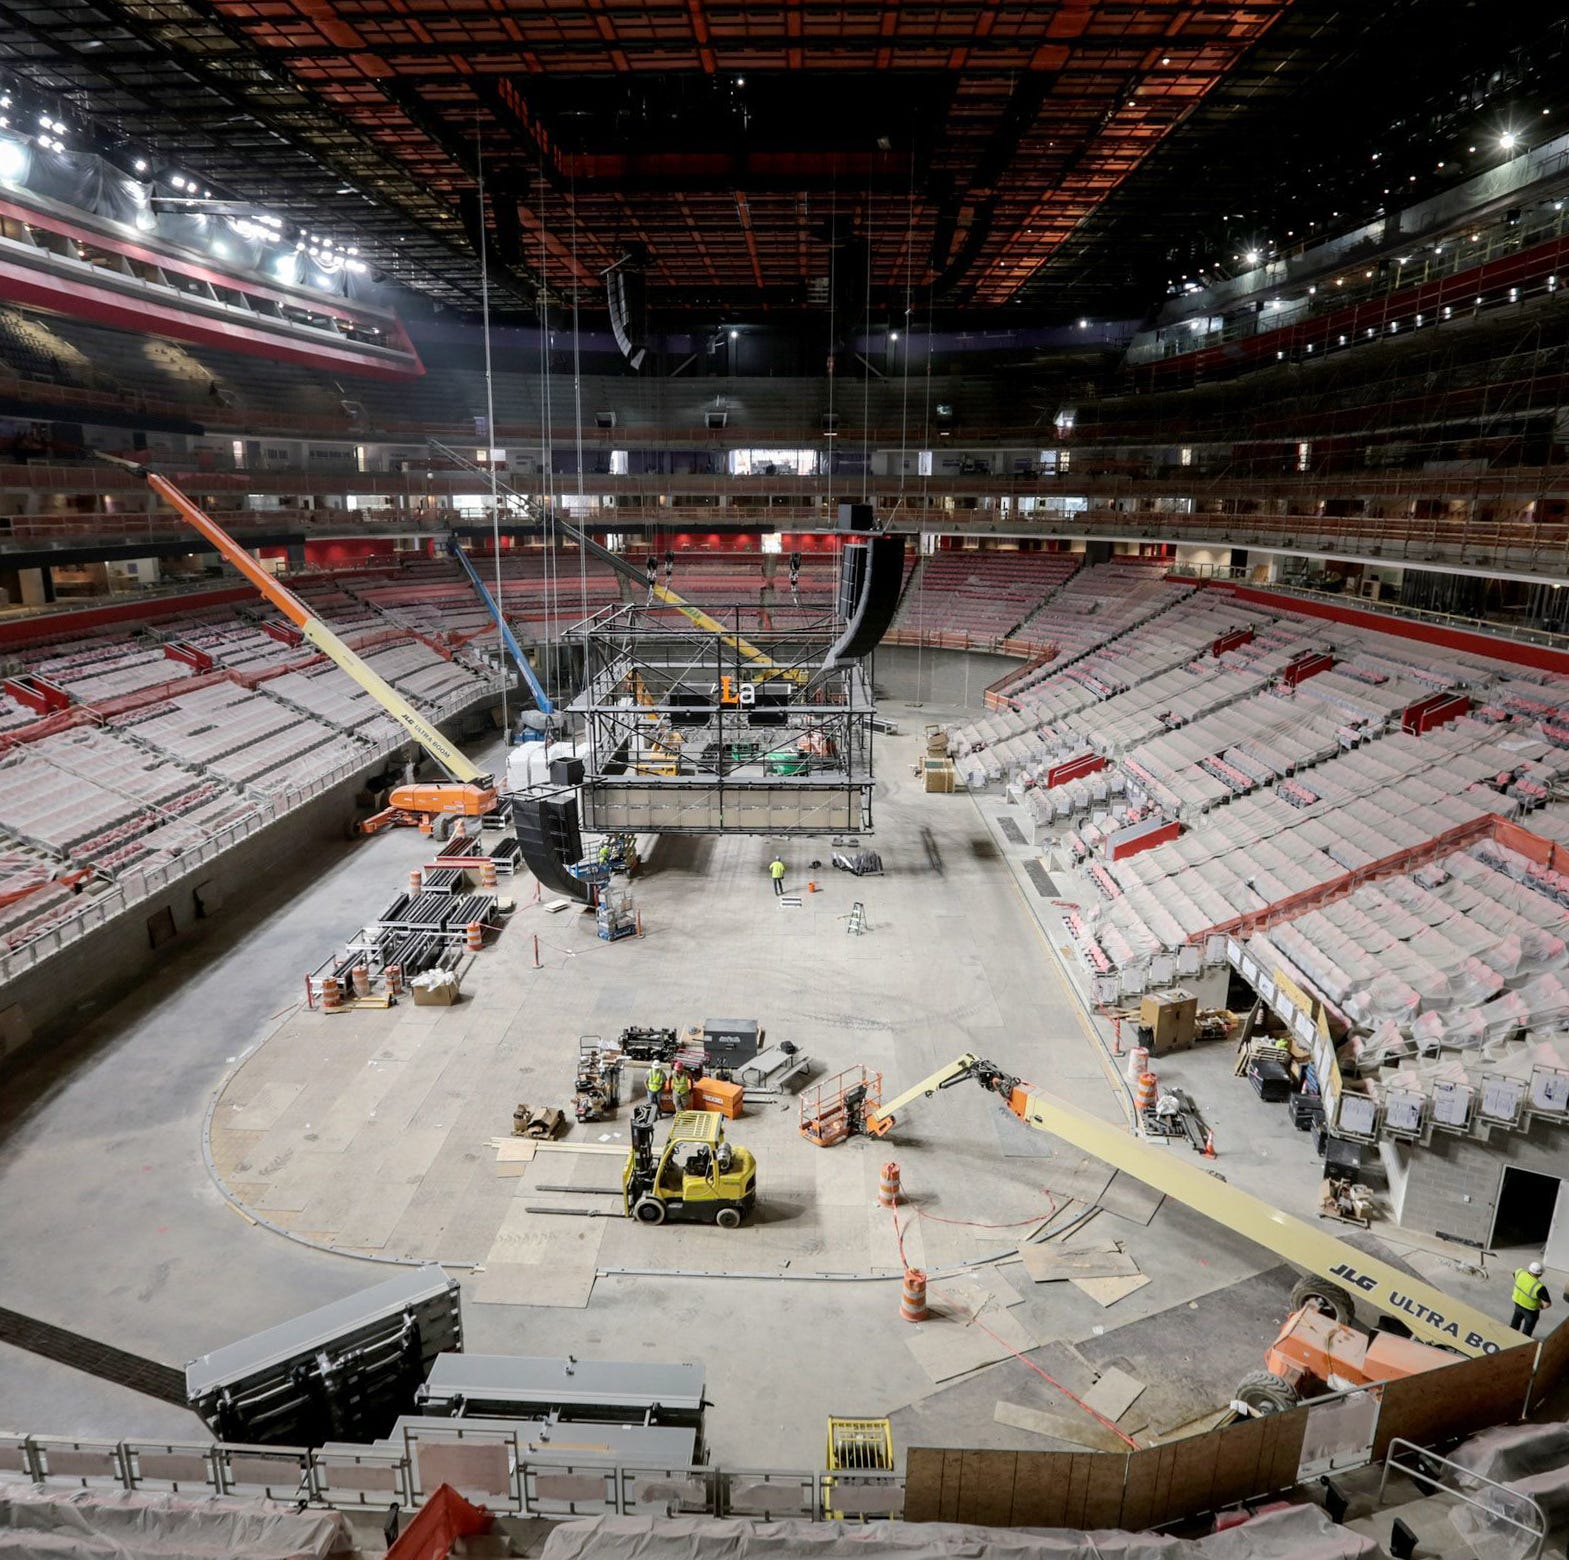 Worker's death at LCA called a suicide. But state's handling raises questions